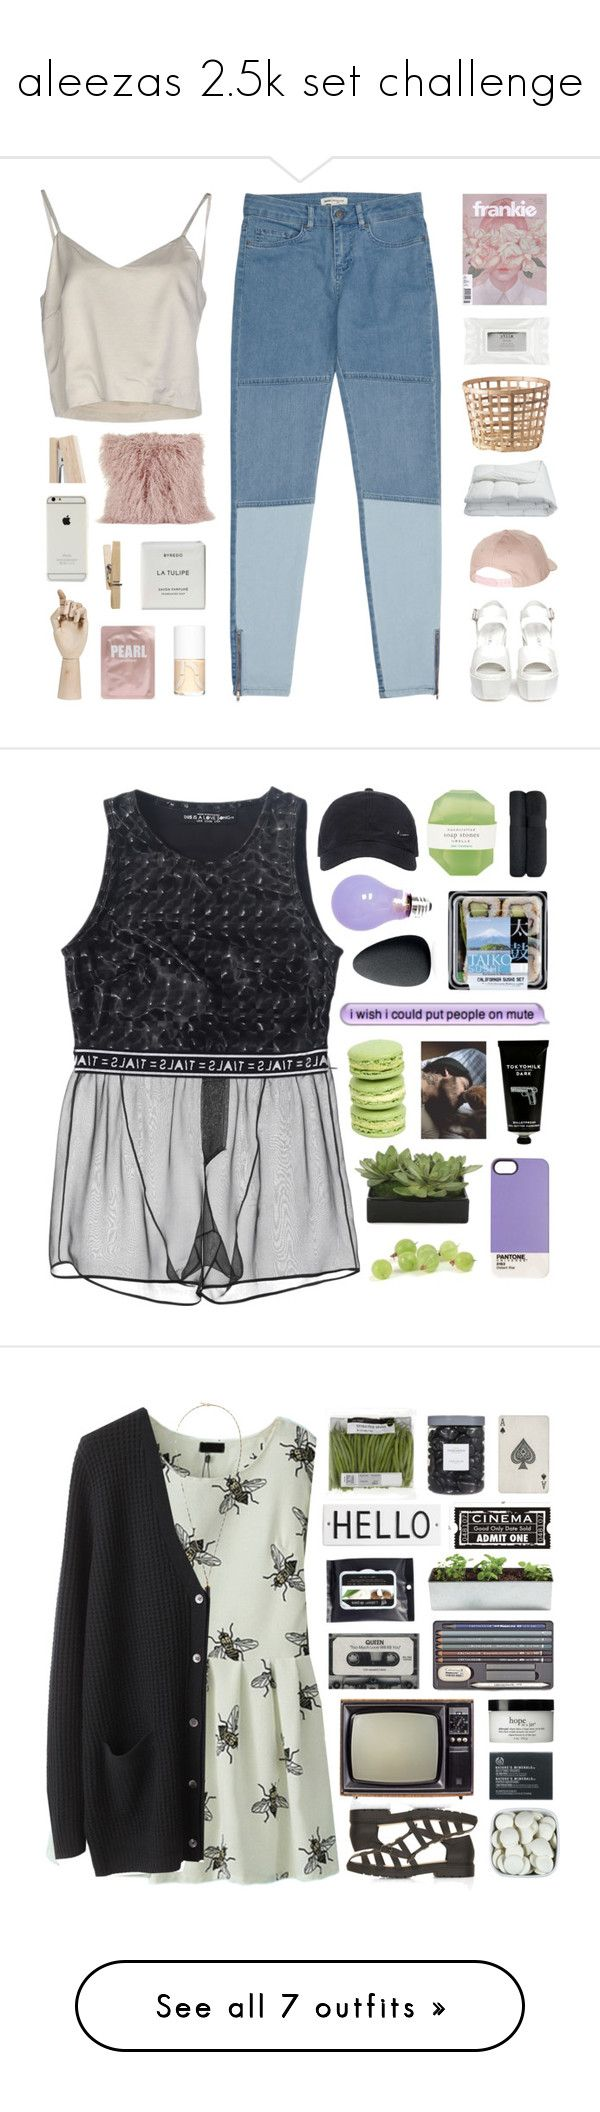 """""""aleezas 2.5k set challenge"""" by centurythe ❤ liked on Polyvore featuring infinitysetchallenge, Reiss, Erika Cavallini Semi-Couture, Natures Collection, Byredo, Uslu Airlines, HAY, Stila, Billabong and Opening Ceremony"""